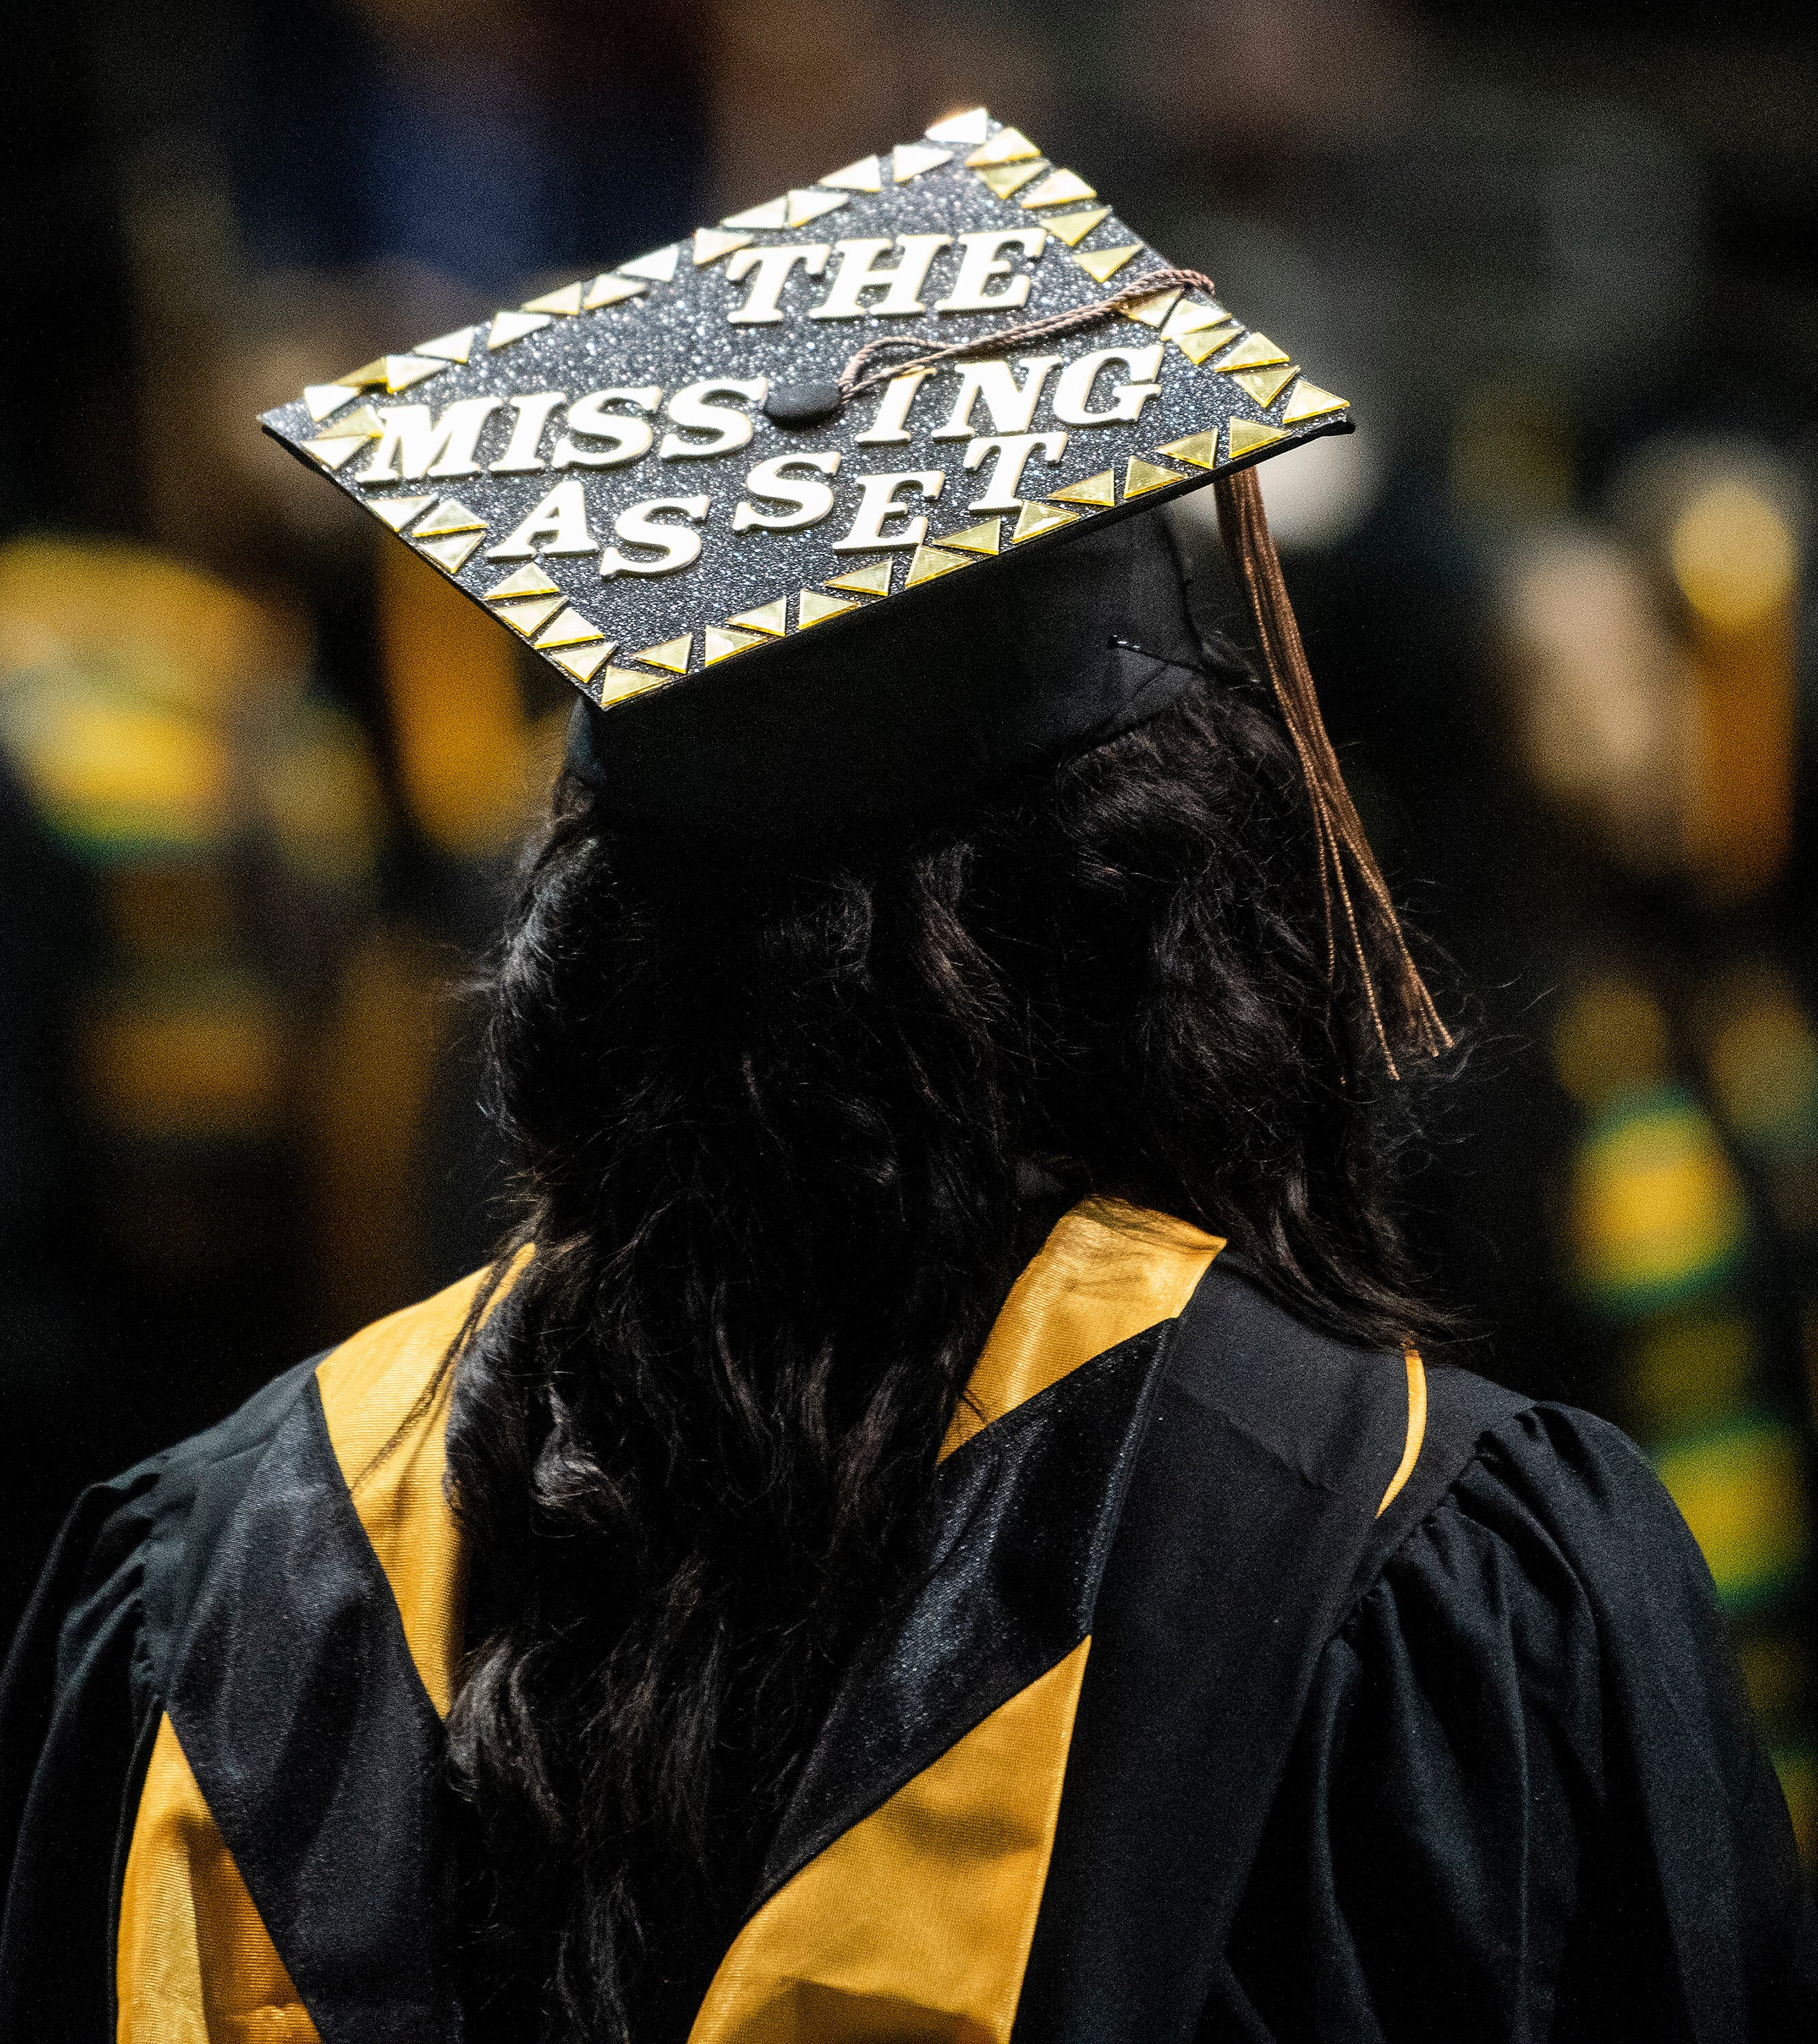 Decorated mortar boards during the Alabama State University Commencement Ceremony in the Acadome on the ASU campus in Montgomery, Ala., on Friday December 7, 2018.